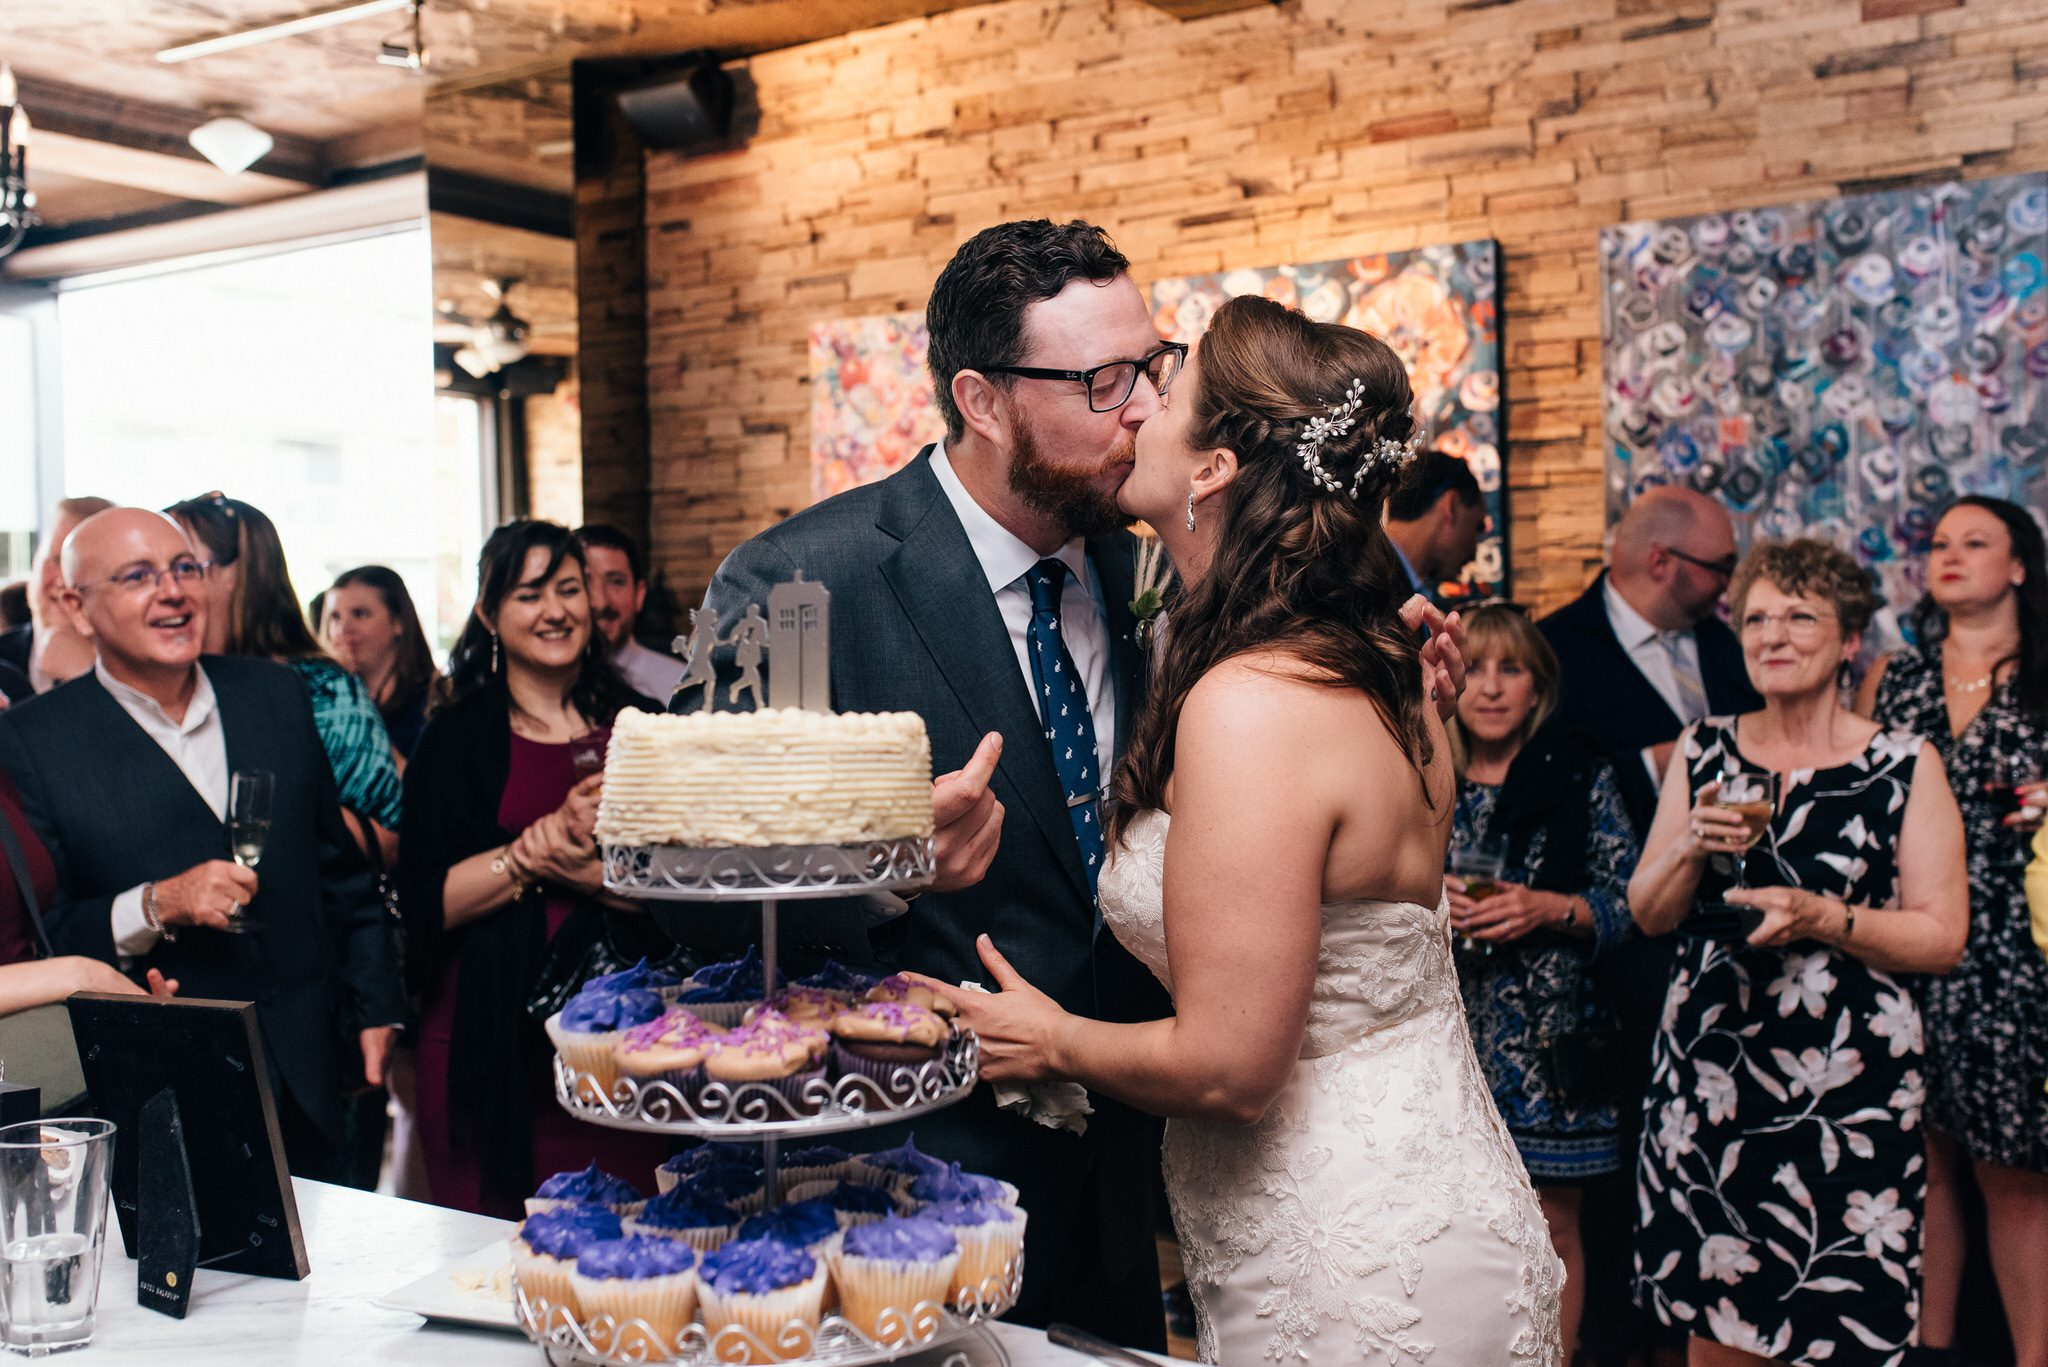 The bride and groom kiss after cutting the cake during their wedding reception at The Rushton Restaurant.